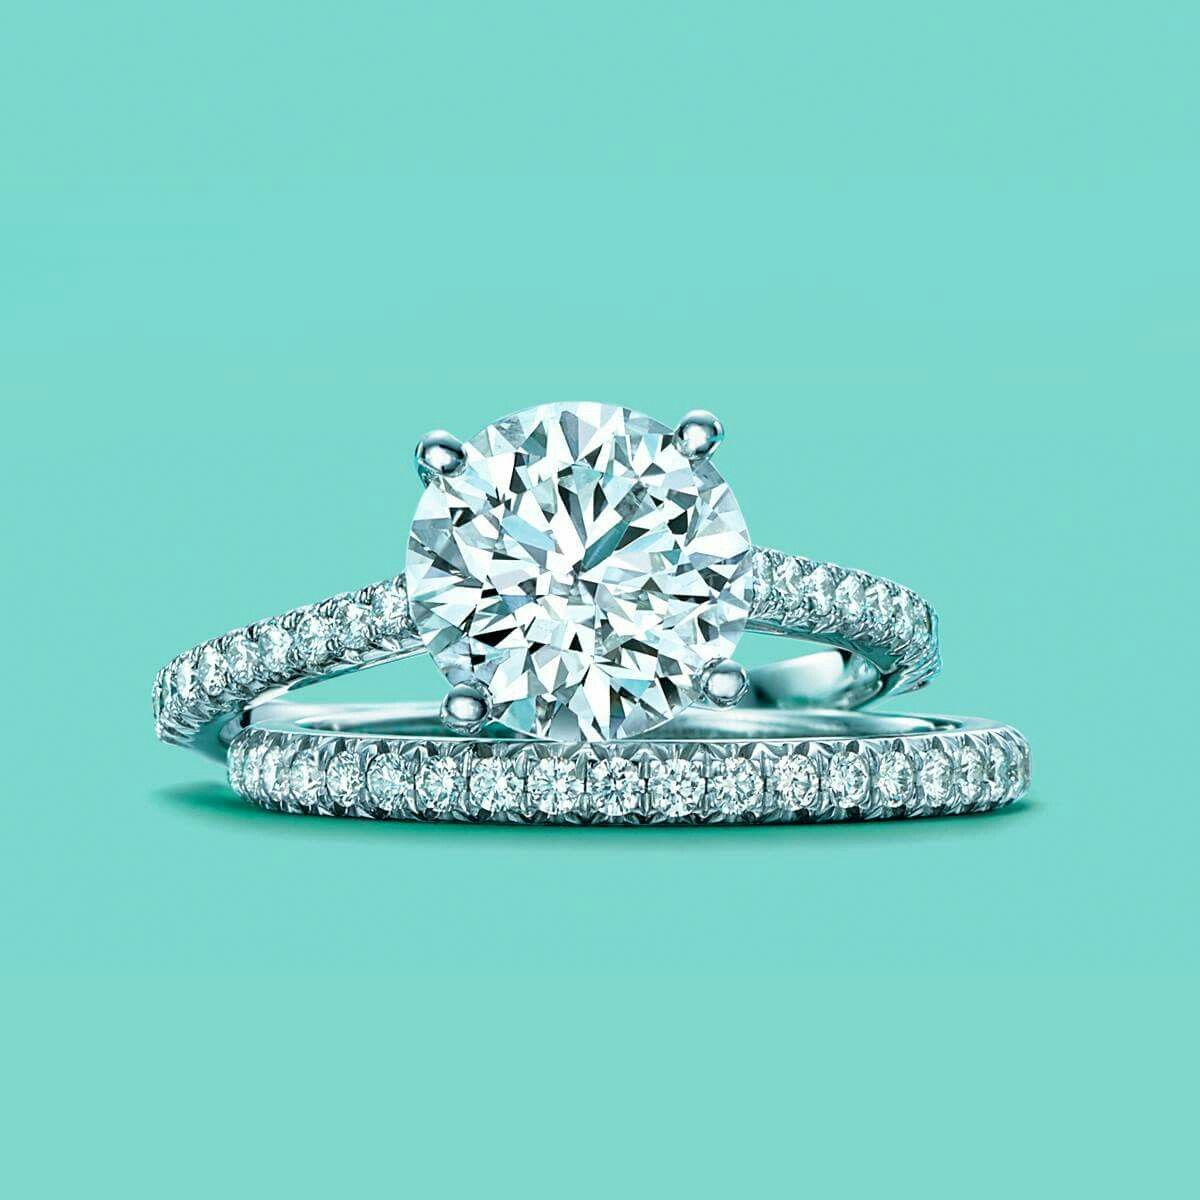 Unique Dream Engagement Ring Classic and Round with Diamond Band Tiffany Novo Tiffany u Co